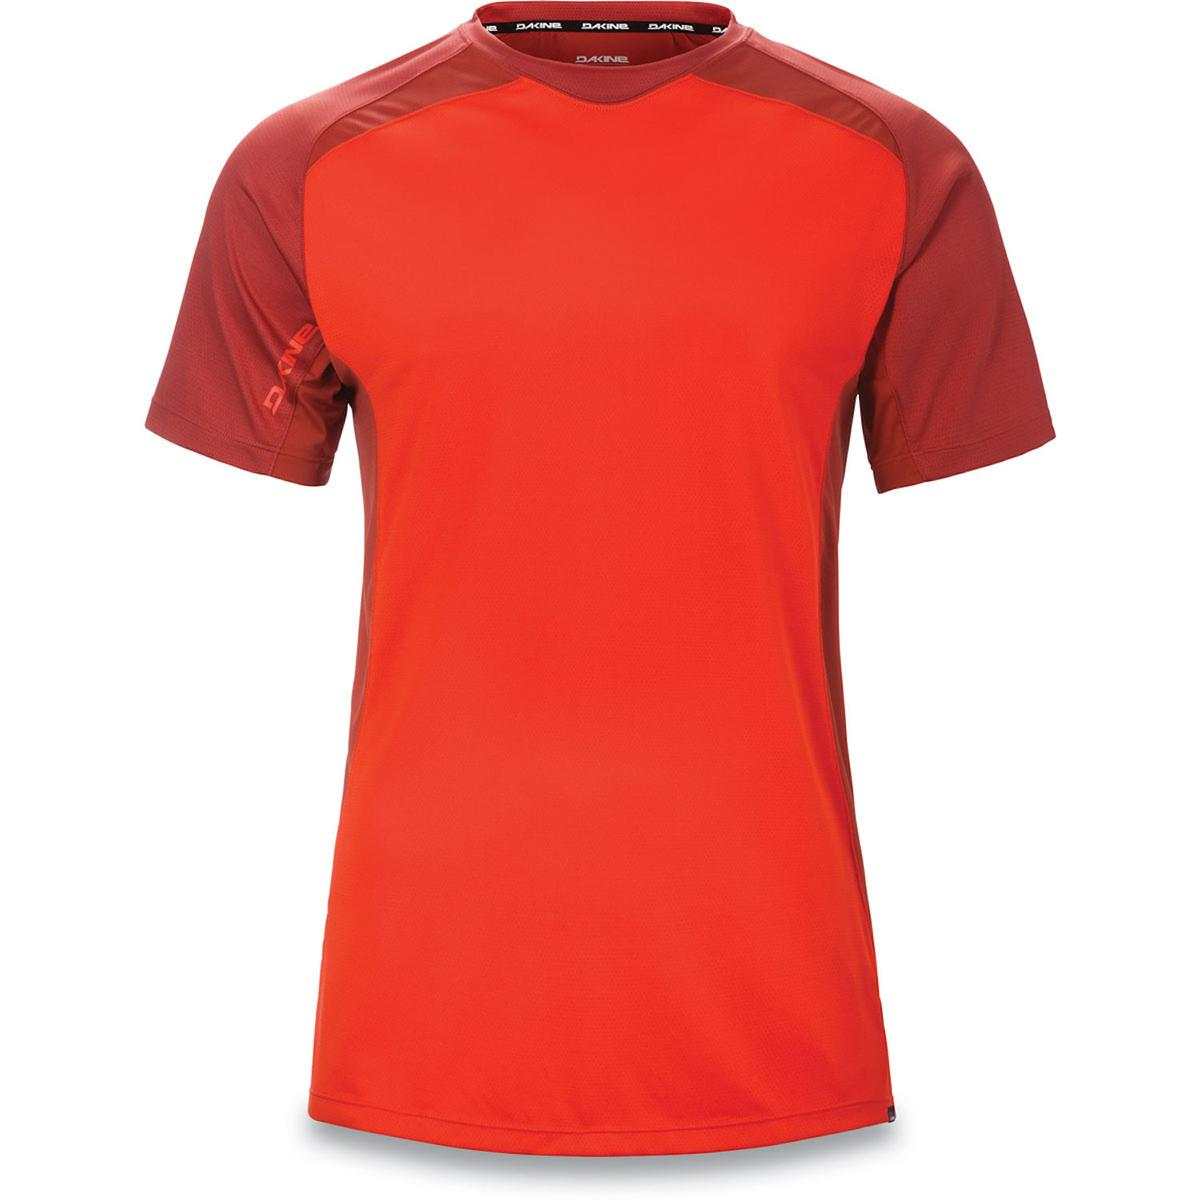 Dakine Charger S/S Bike Jersey Men's Performance Shirt